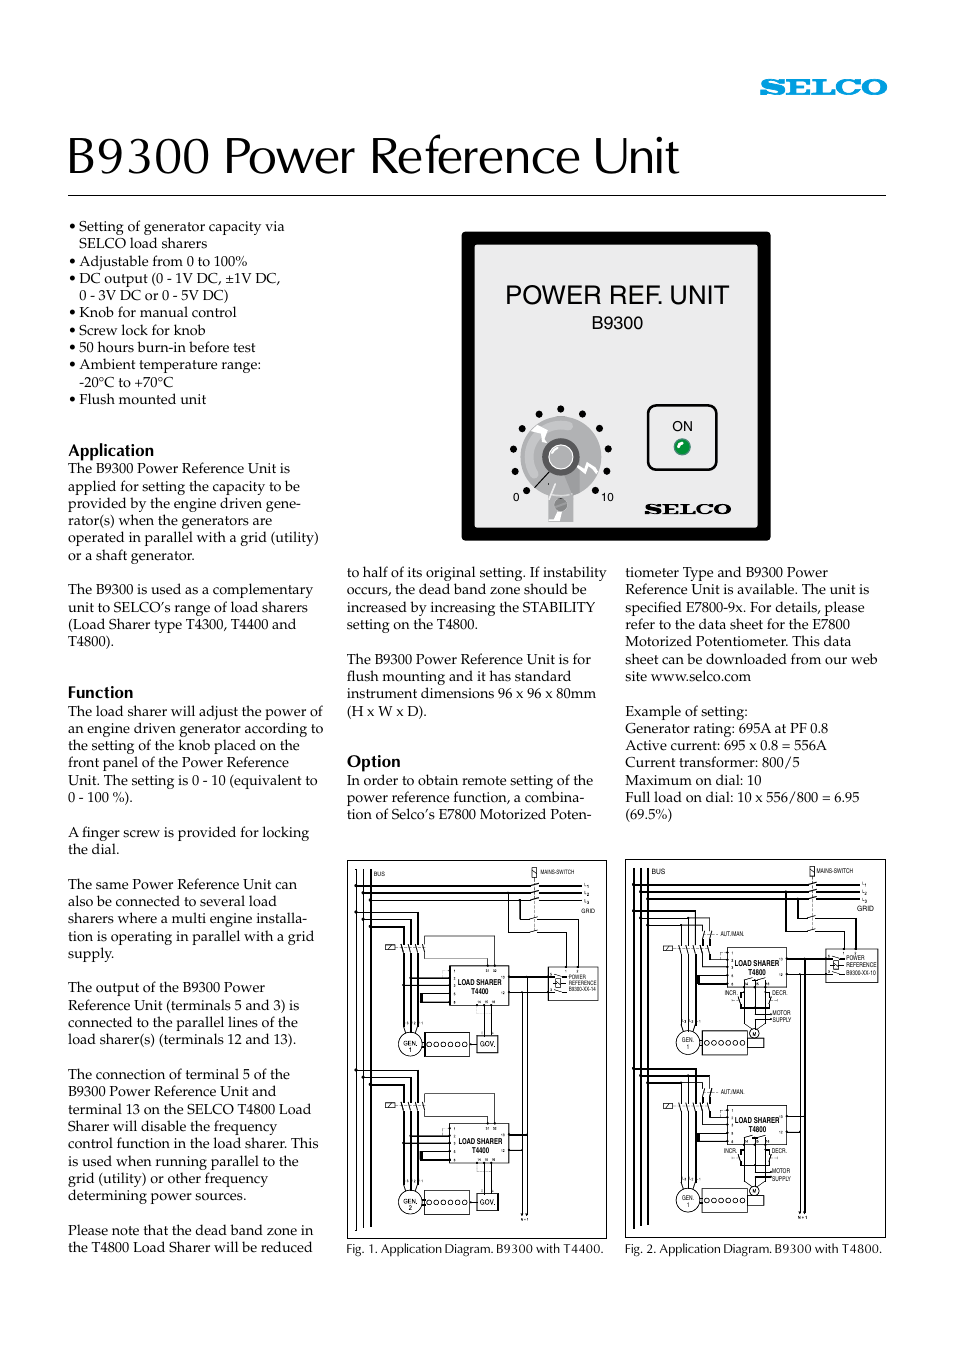 littelfuse selco b9300 power reference unit user manual